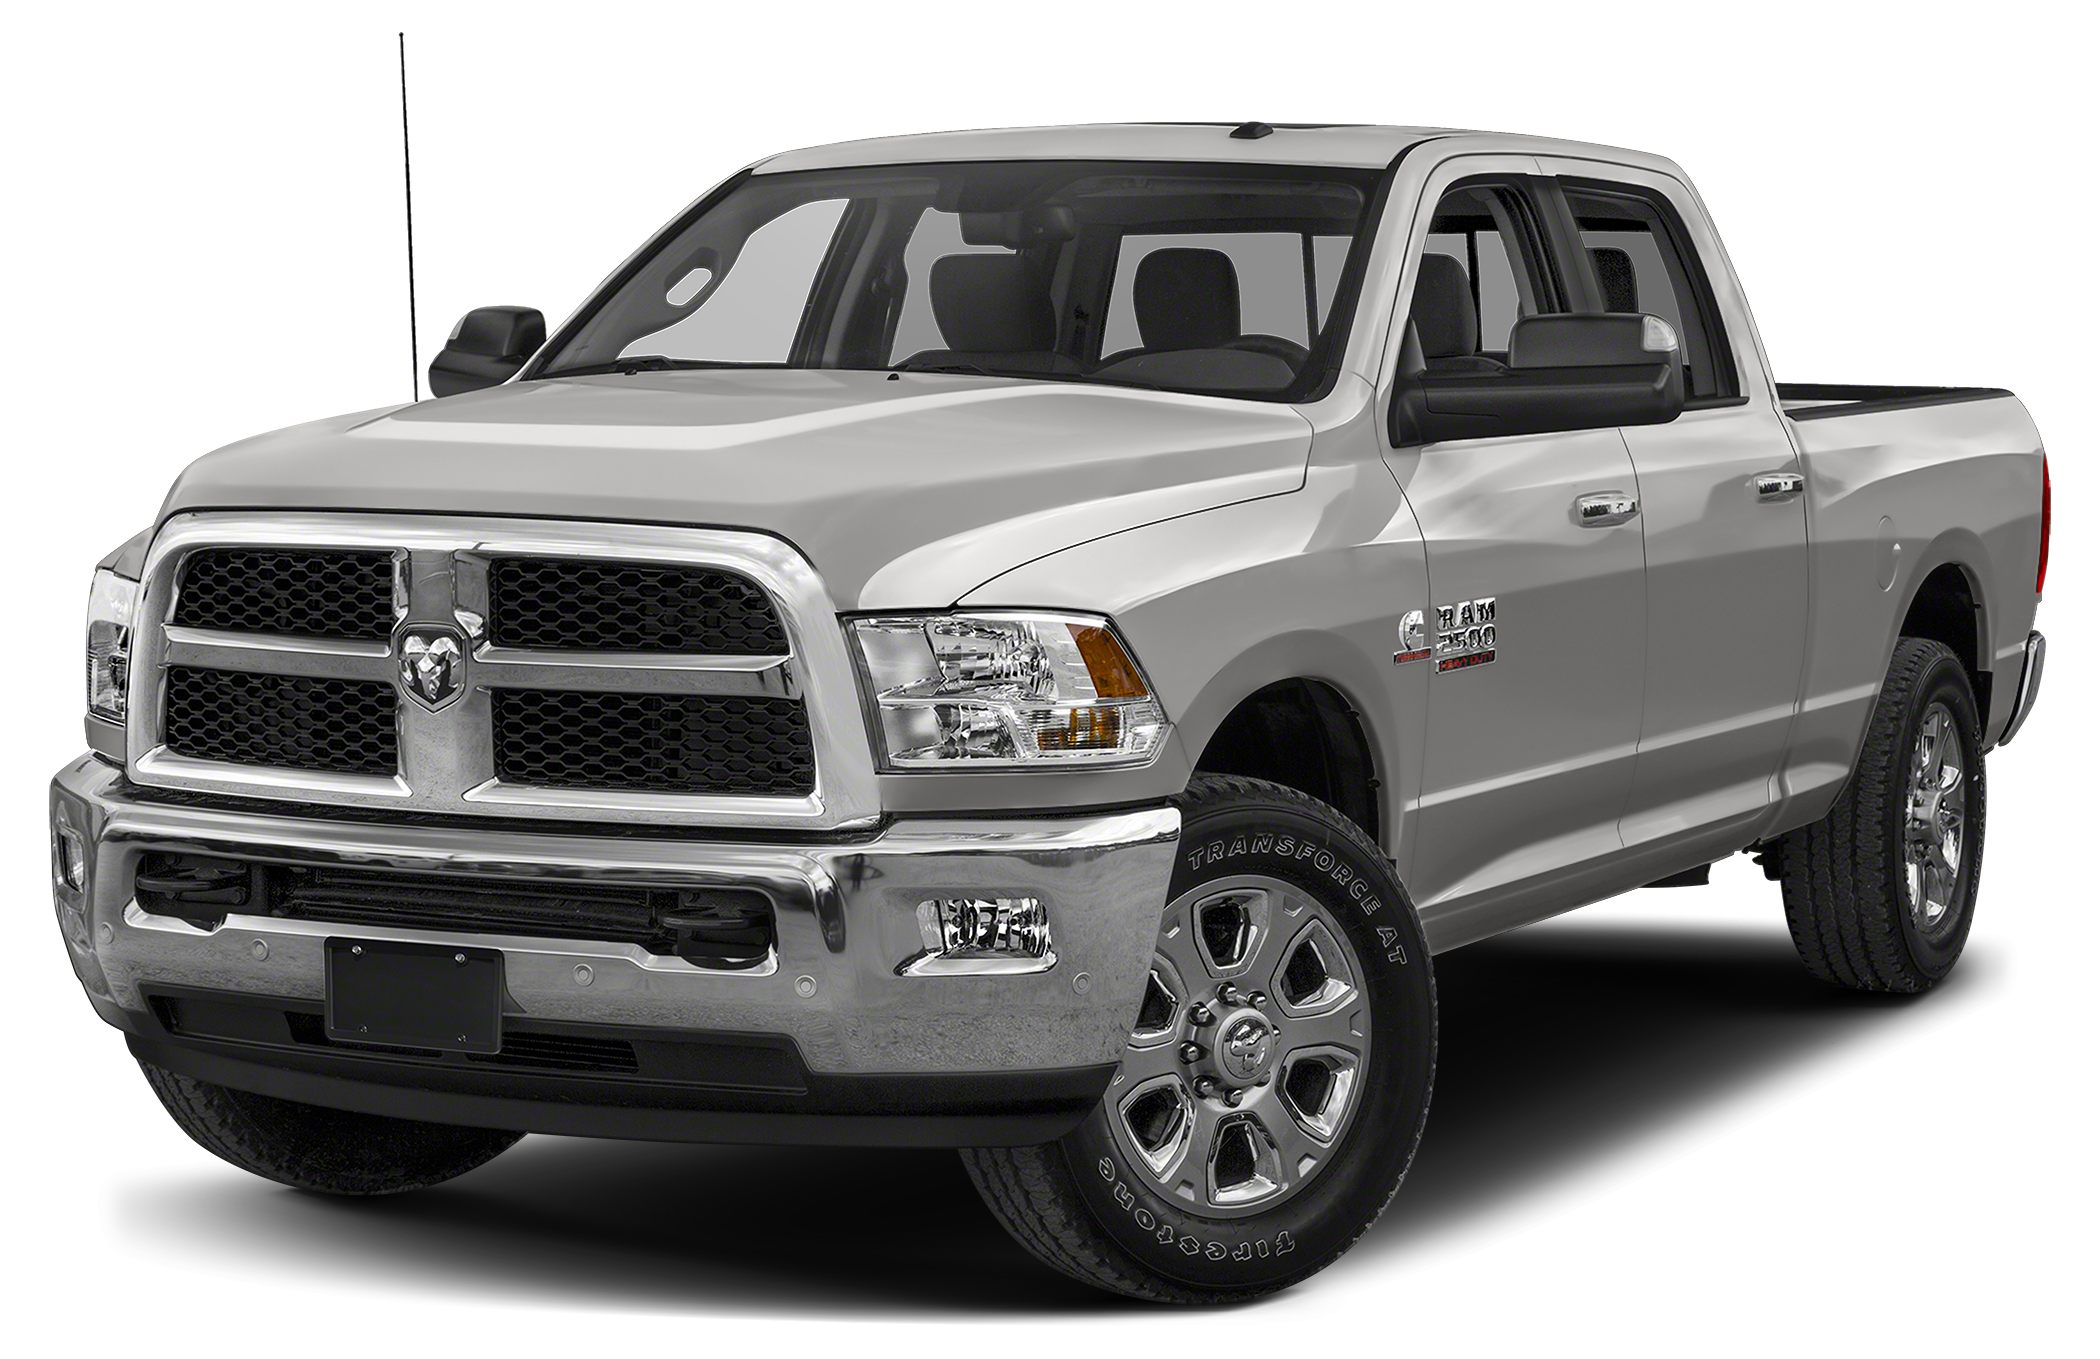 2017 RAM 2500 SLT Miles 22643Color Bright Silver Metallic Clearcoat Stock 177718B VIN 3C6UR4